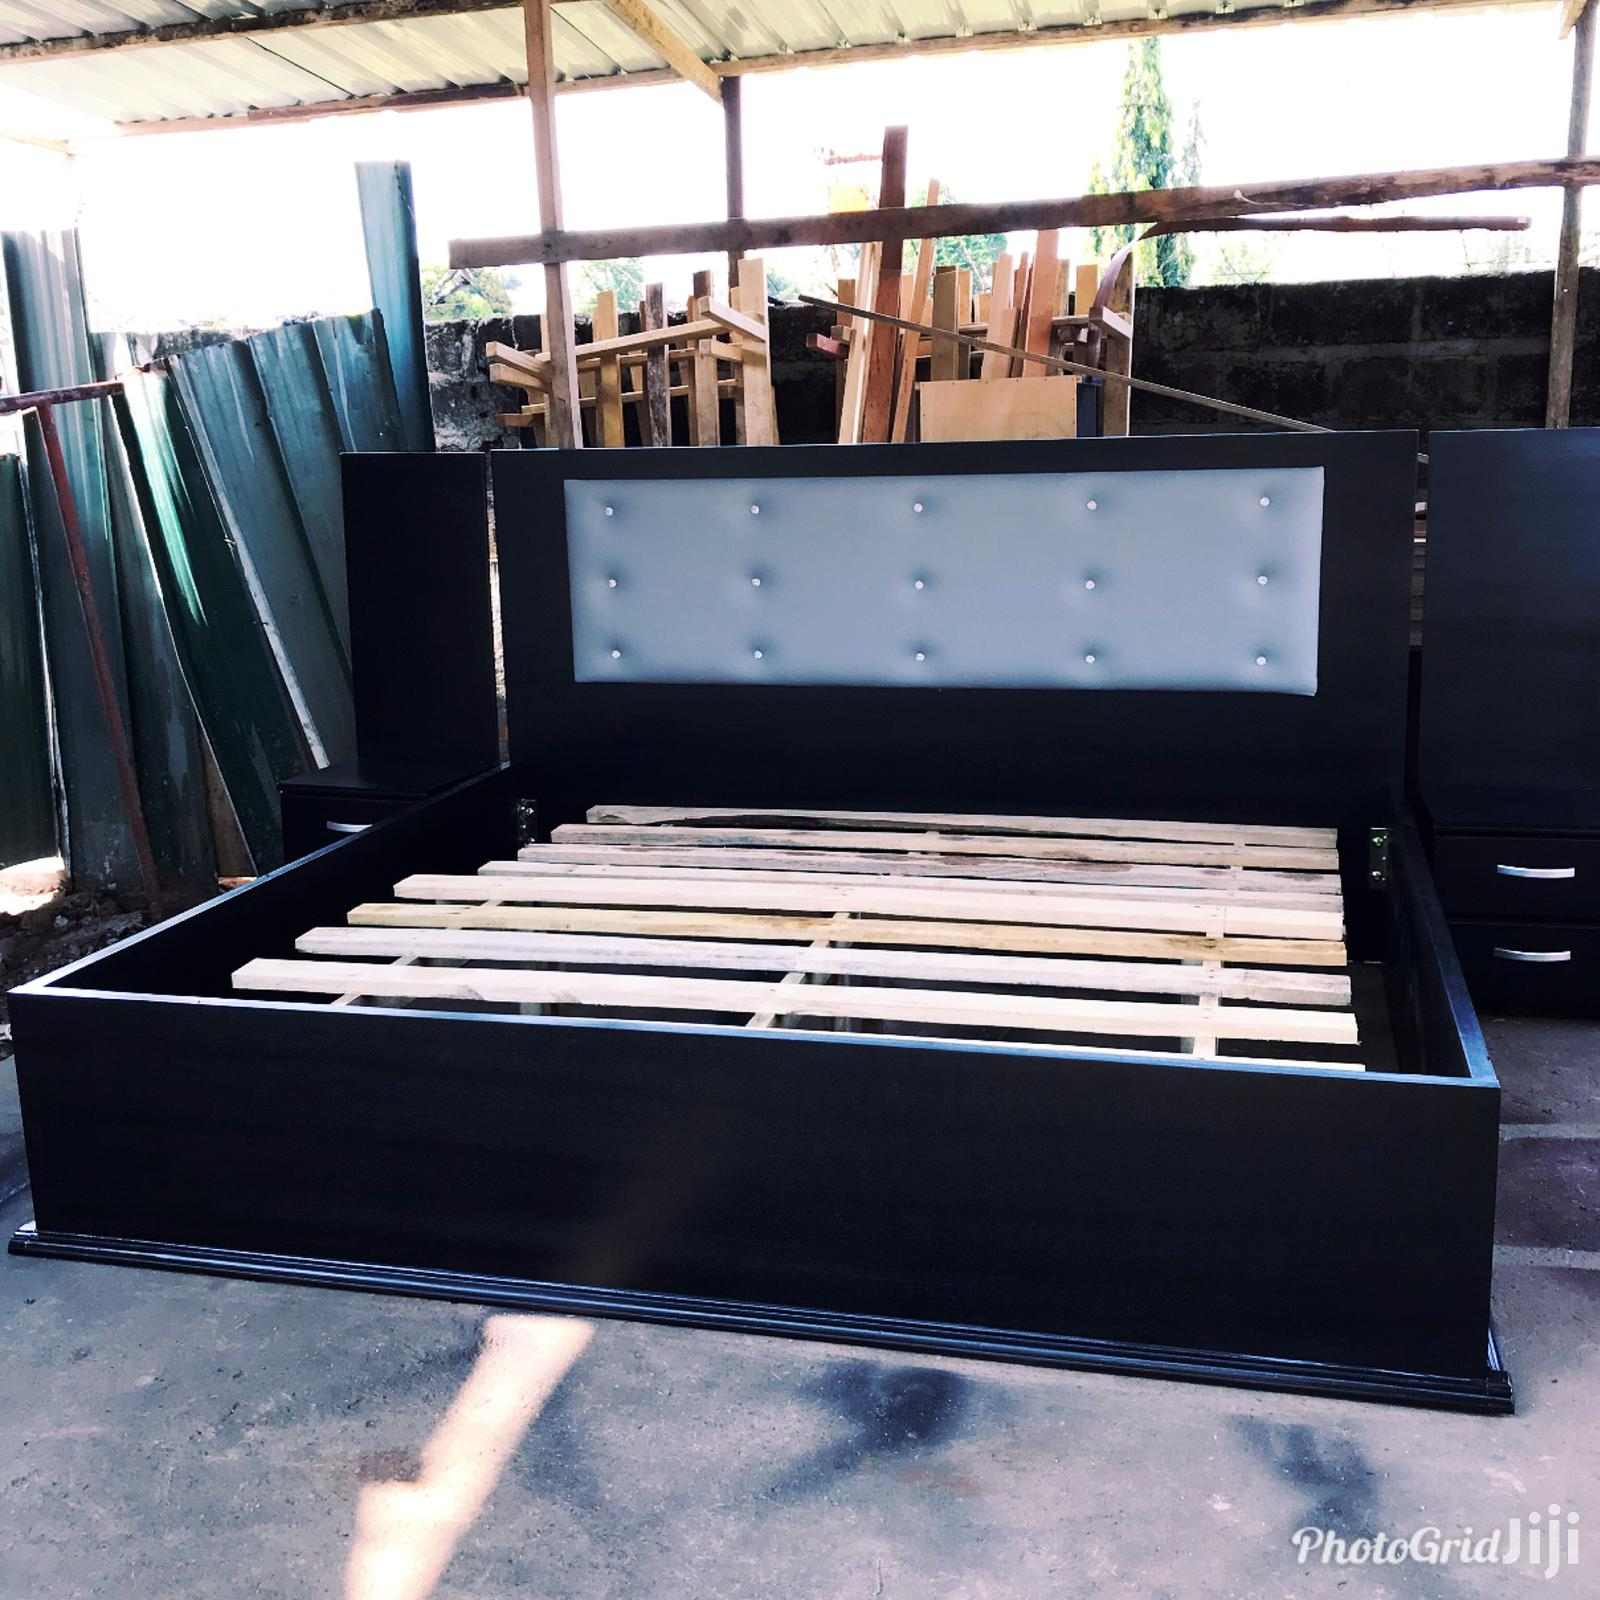 Spray King Size Beds With Tow Side Drawers 85 by 75 Inches